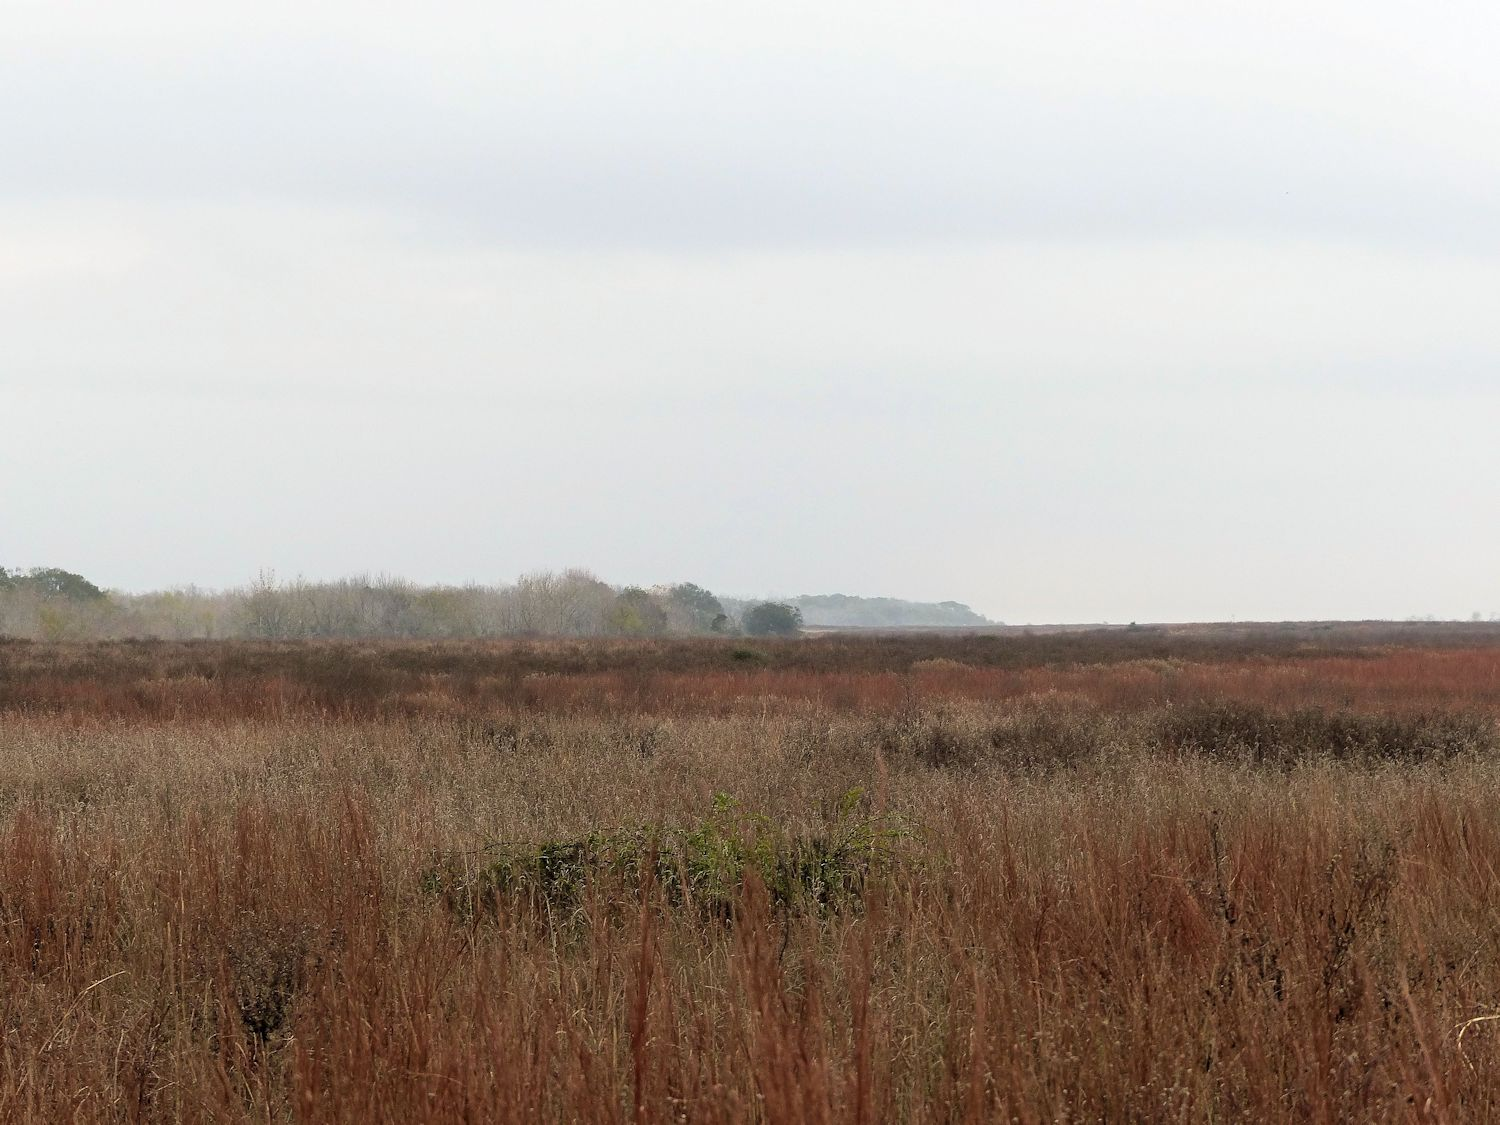 Attwater Prairie Chicken Refuge - those are just trees in the distance. Not mountains, Carolyn.